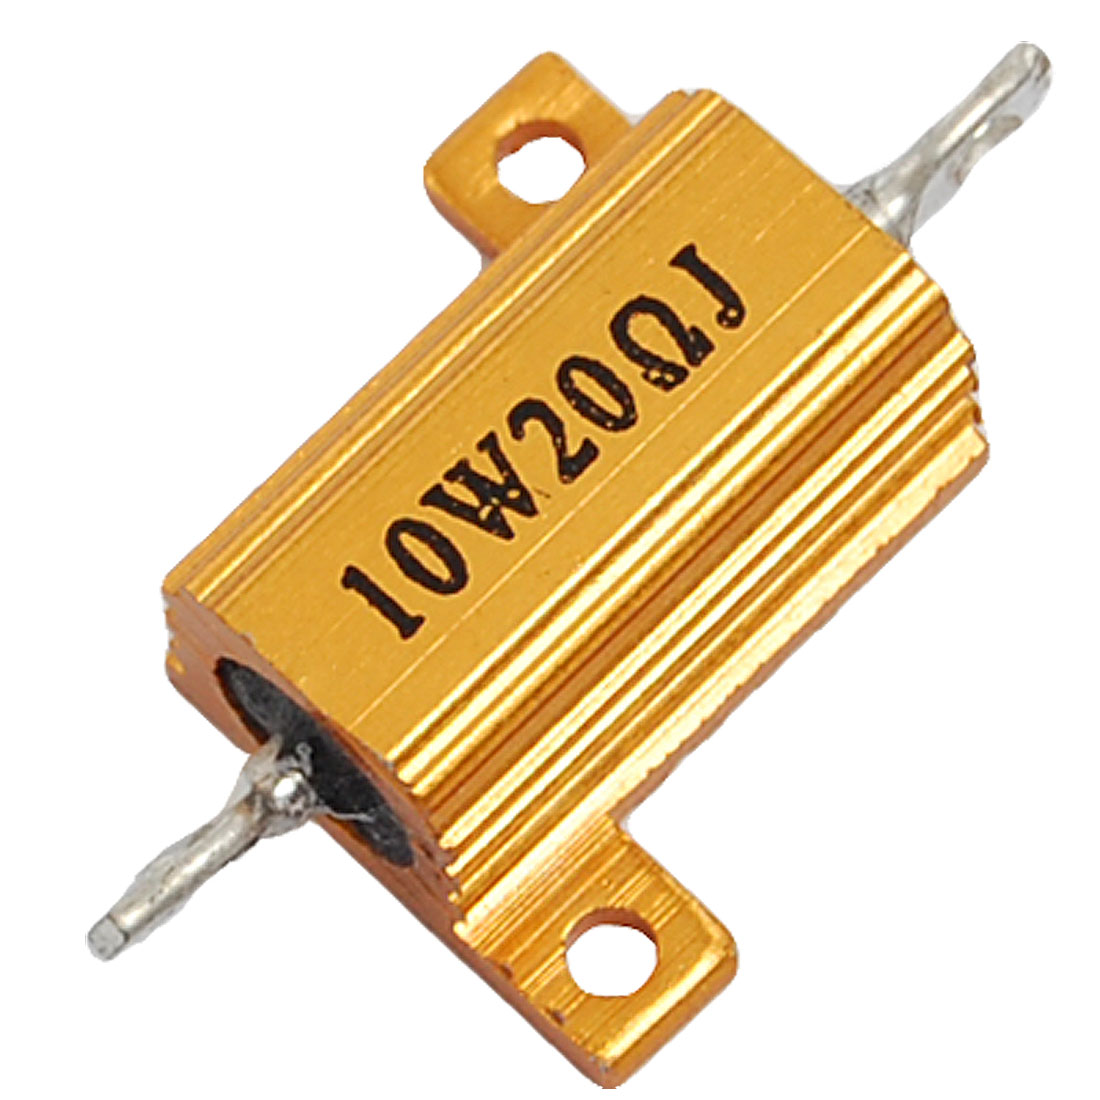 Gold Tone Aluminum Housed Wire Wound Resistor 10W 20 Ohm 5%